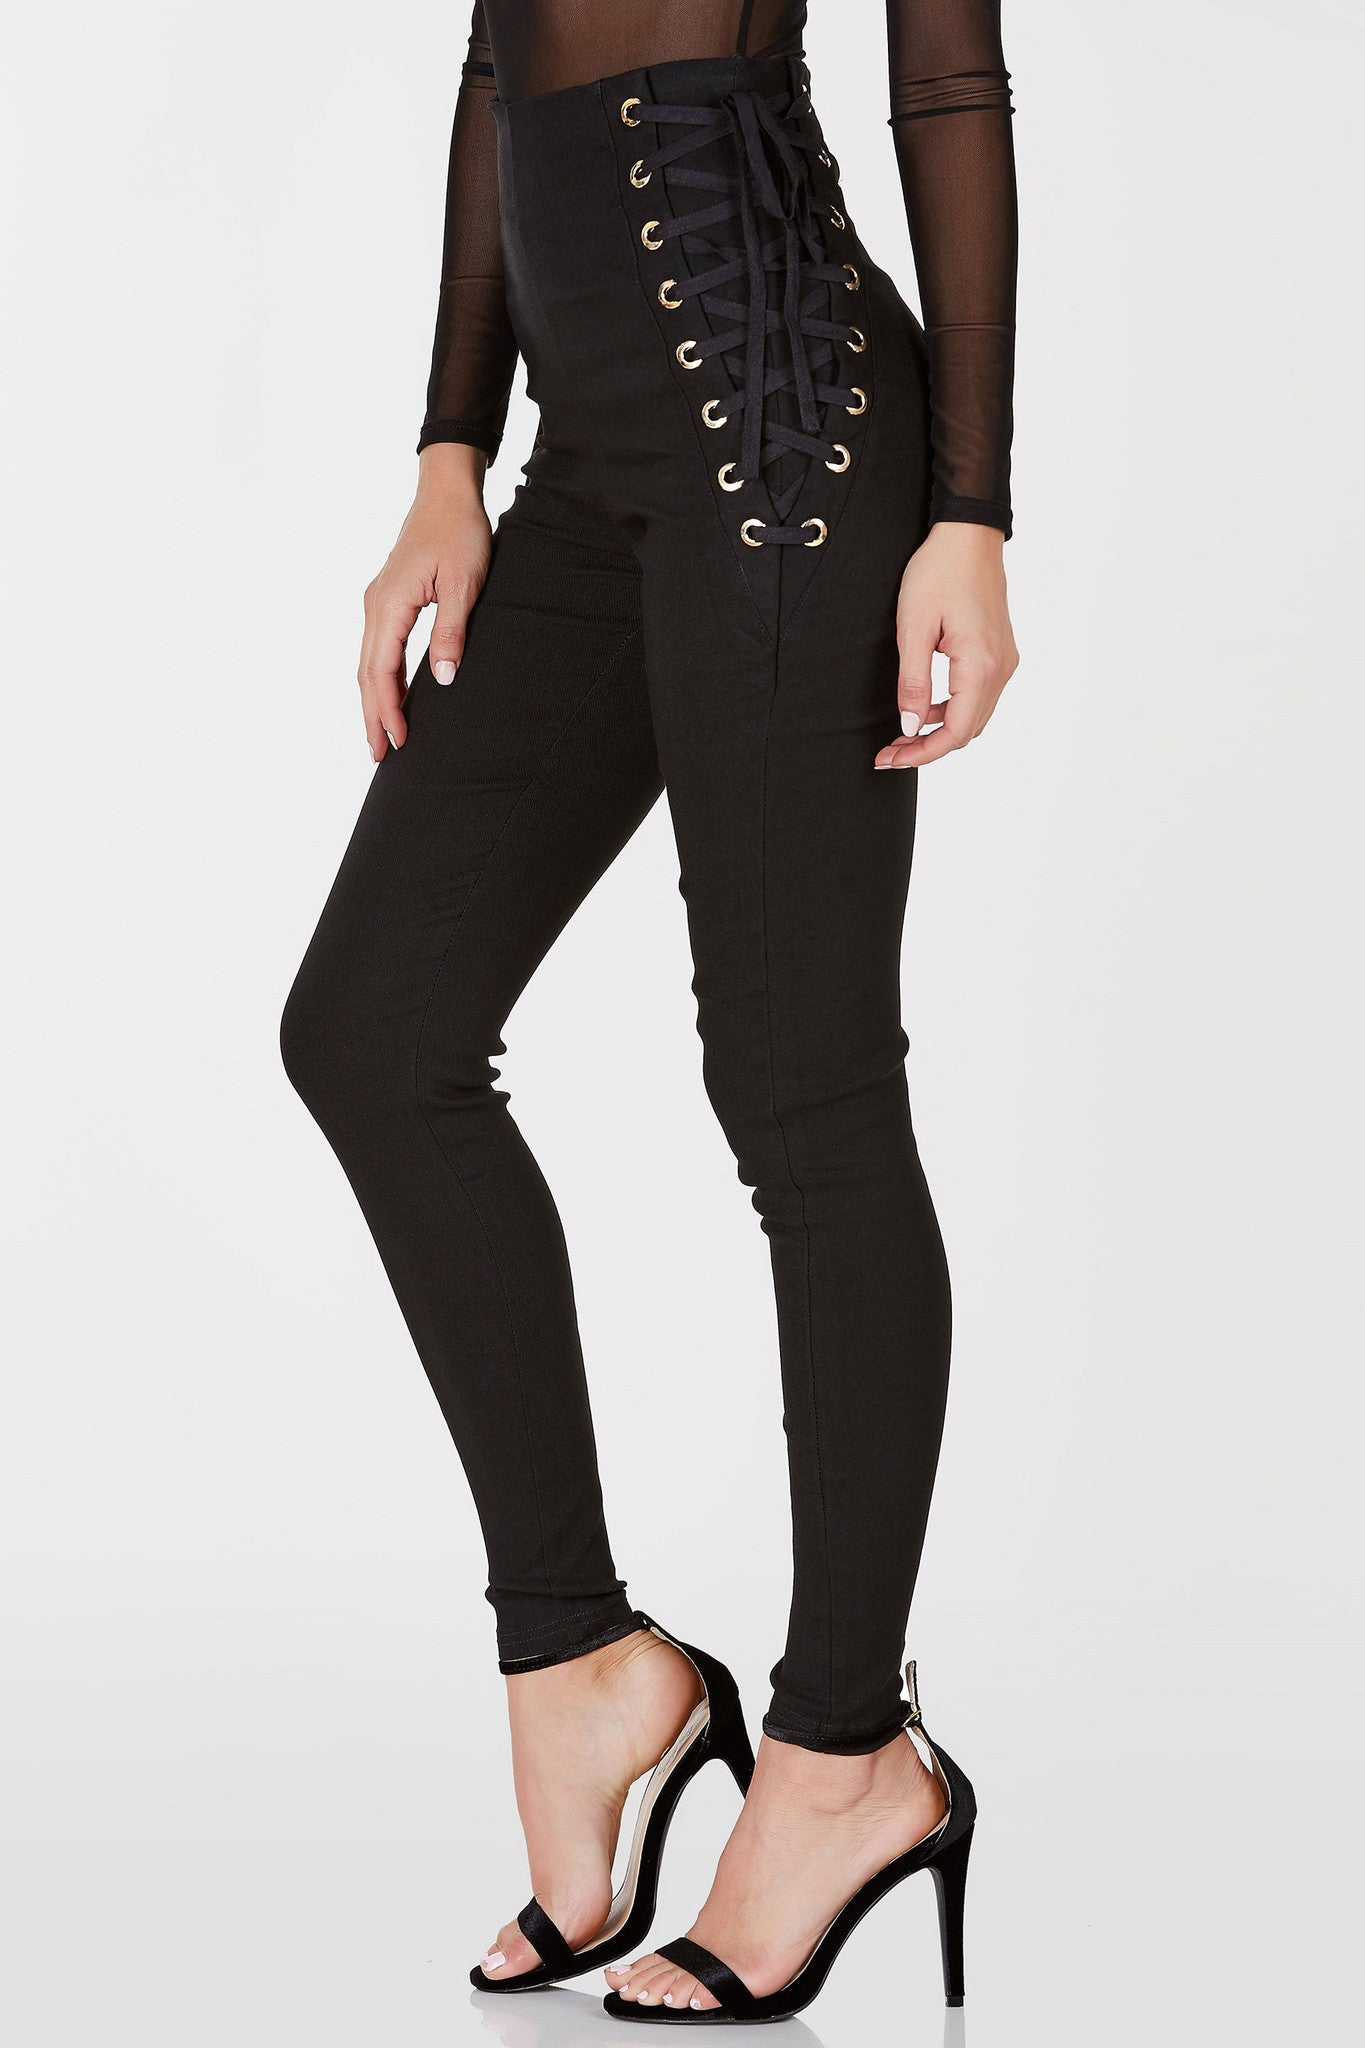 Take your dressy pants to the next level with these awesome lace up pants! Chic eyelet detailing with laces for adjustable fit and style. Super stretchy material provides a comfortable, flattering fit. Exposed zipper in back for closure. Style with a bodysuit and pumps for an evening look.